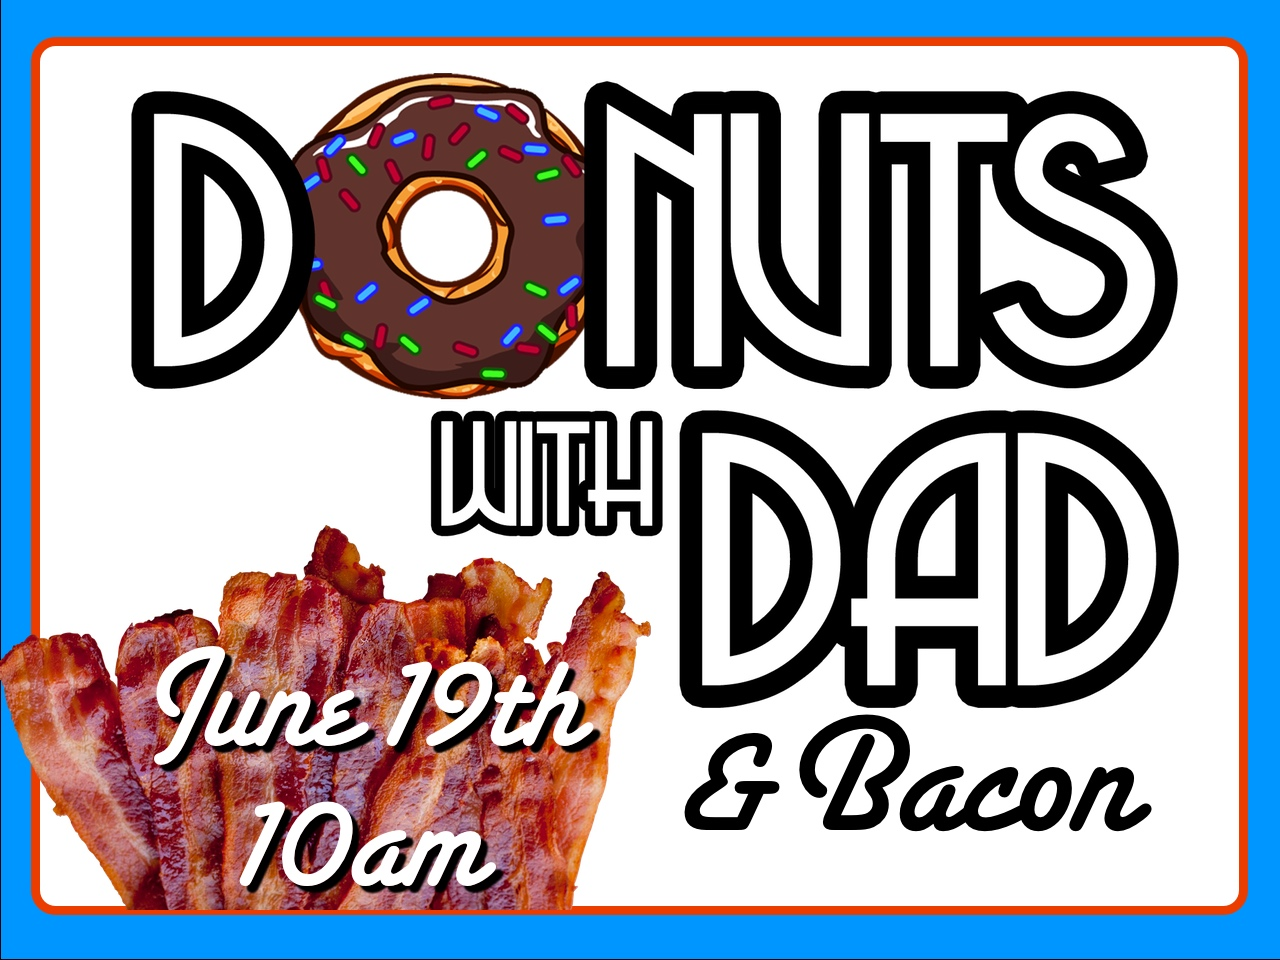 Join us on Father's Day as we celebrate Dads with donuts and bacon before worship! We hope to see you there!